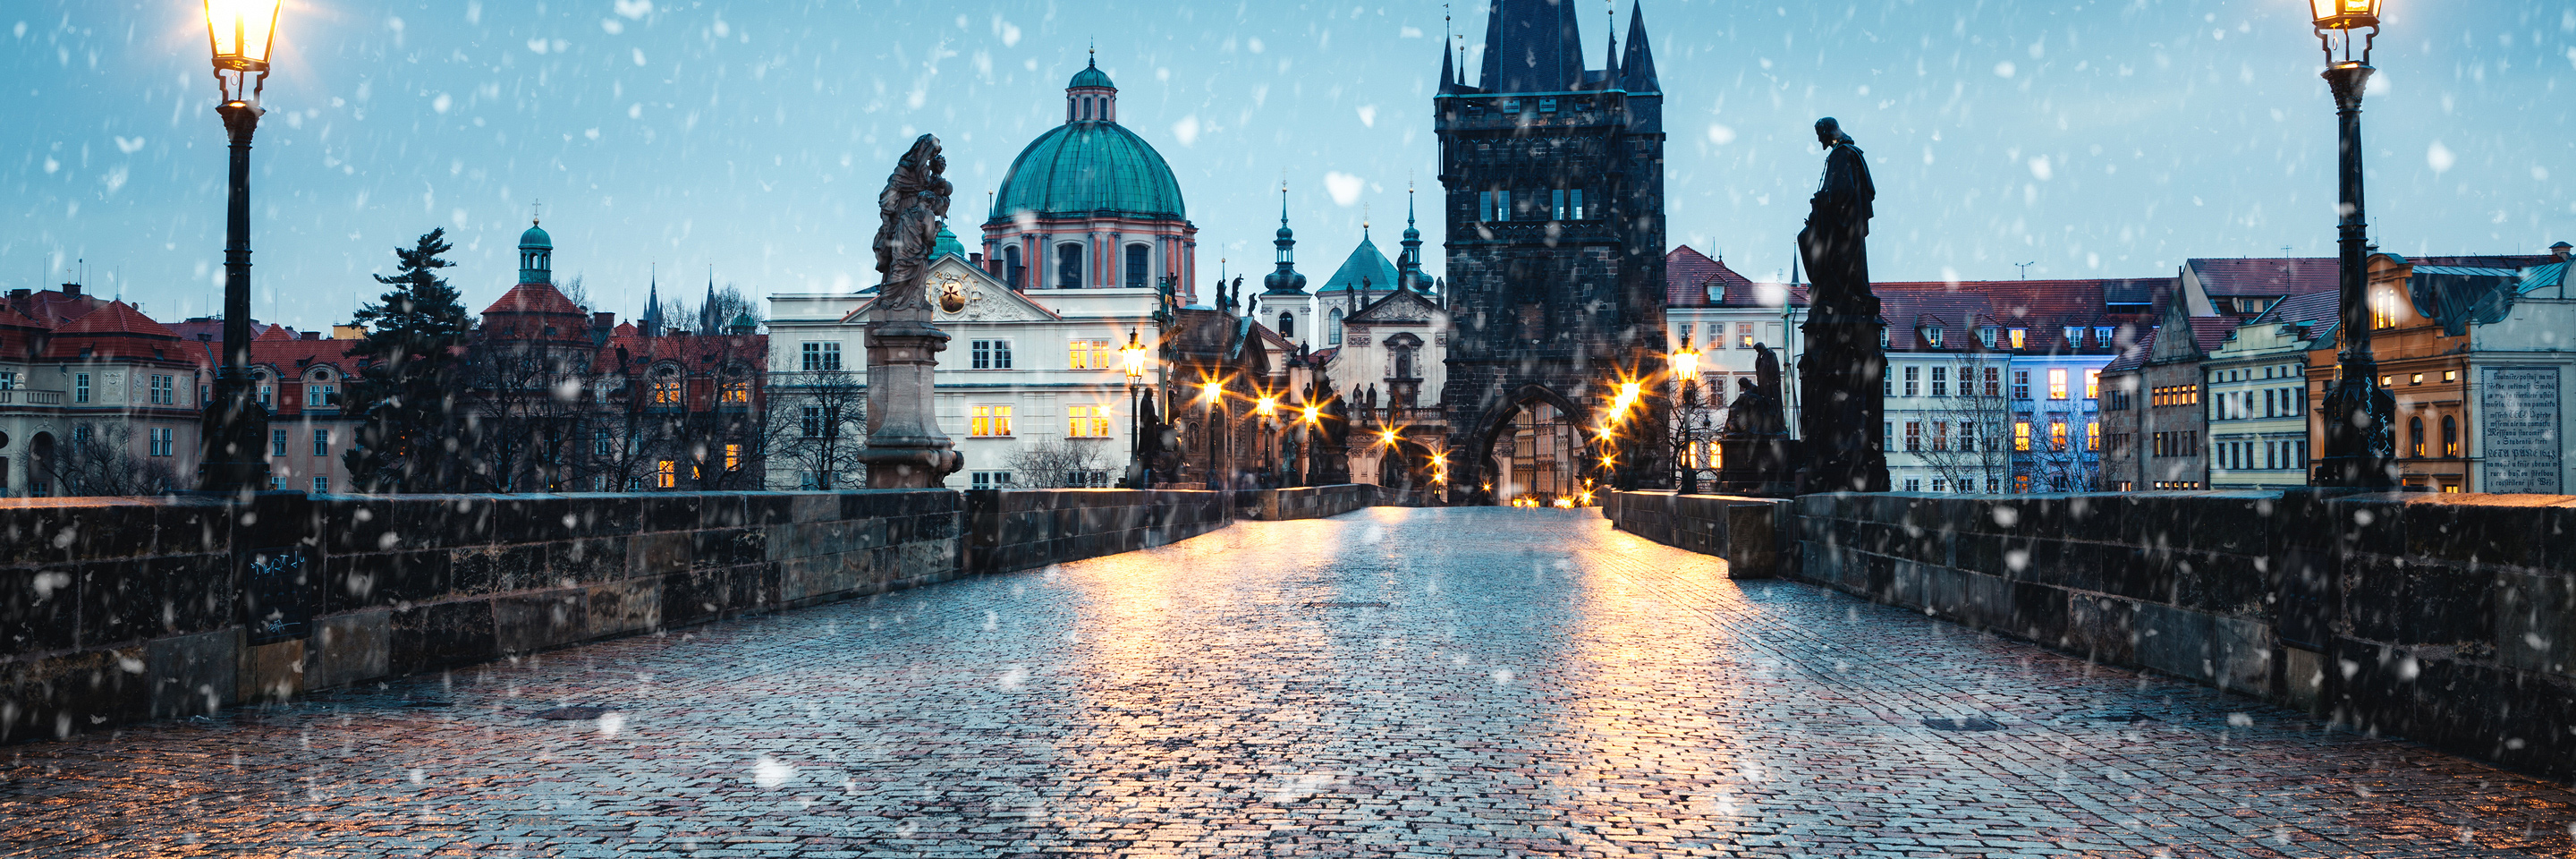 Festive Season on The Blue Danube Discovery with 2 Nights in Prague